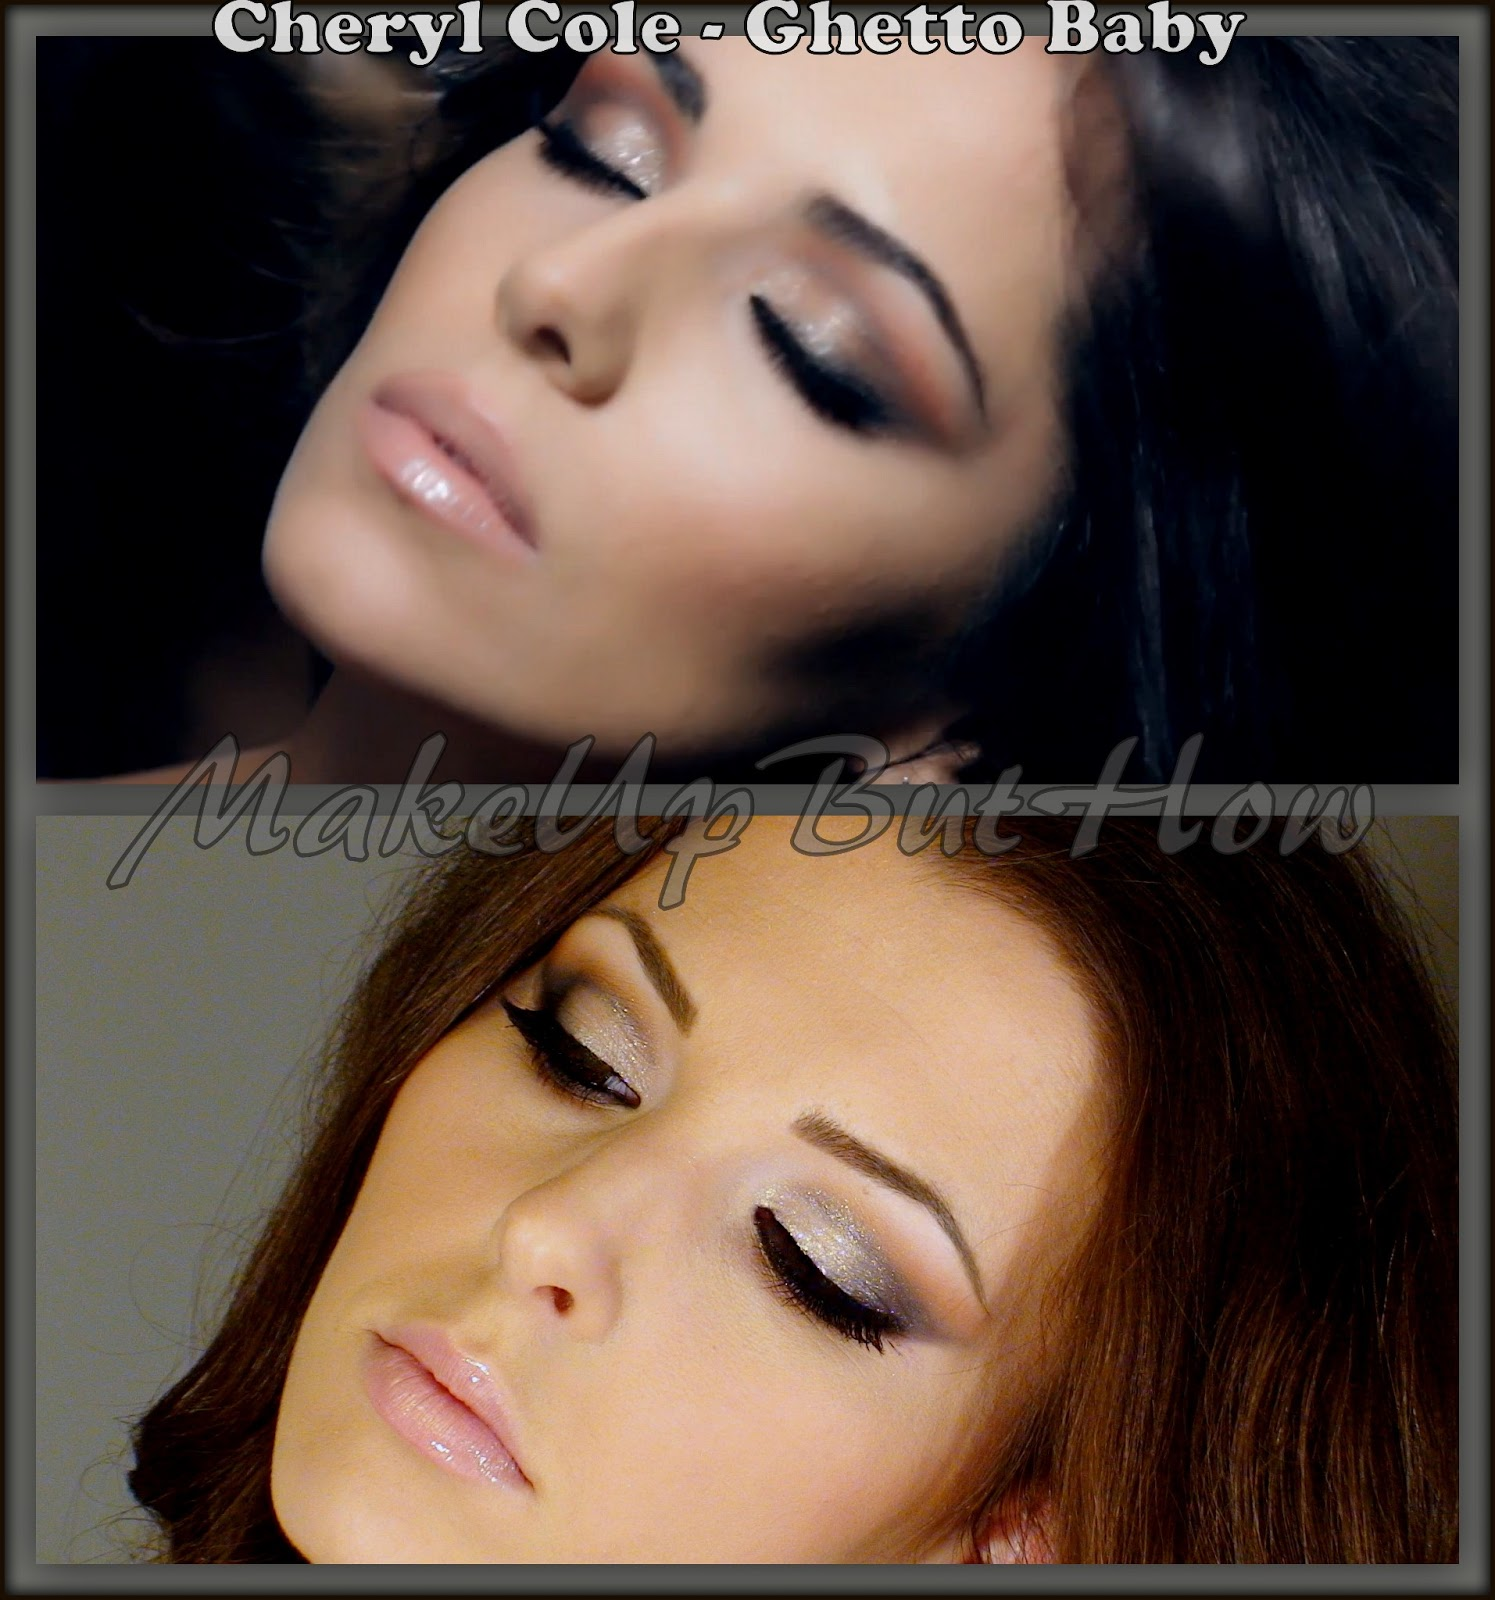 http://4.bp.blogspot.com/-QCxay6xHkNI/UPgRln5MrbI/AAAAAAAABLg/D4PzOQeNowU/s1600/Cheryl+Cole+makeup+video+photos.jpg